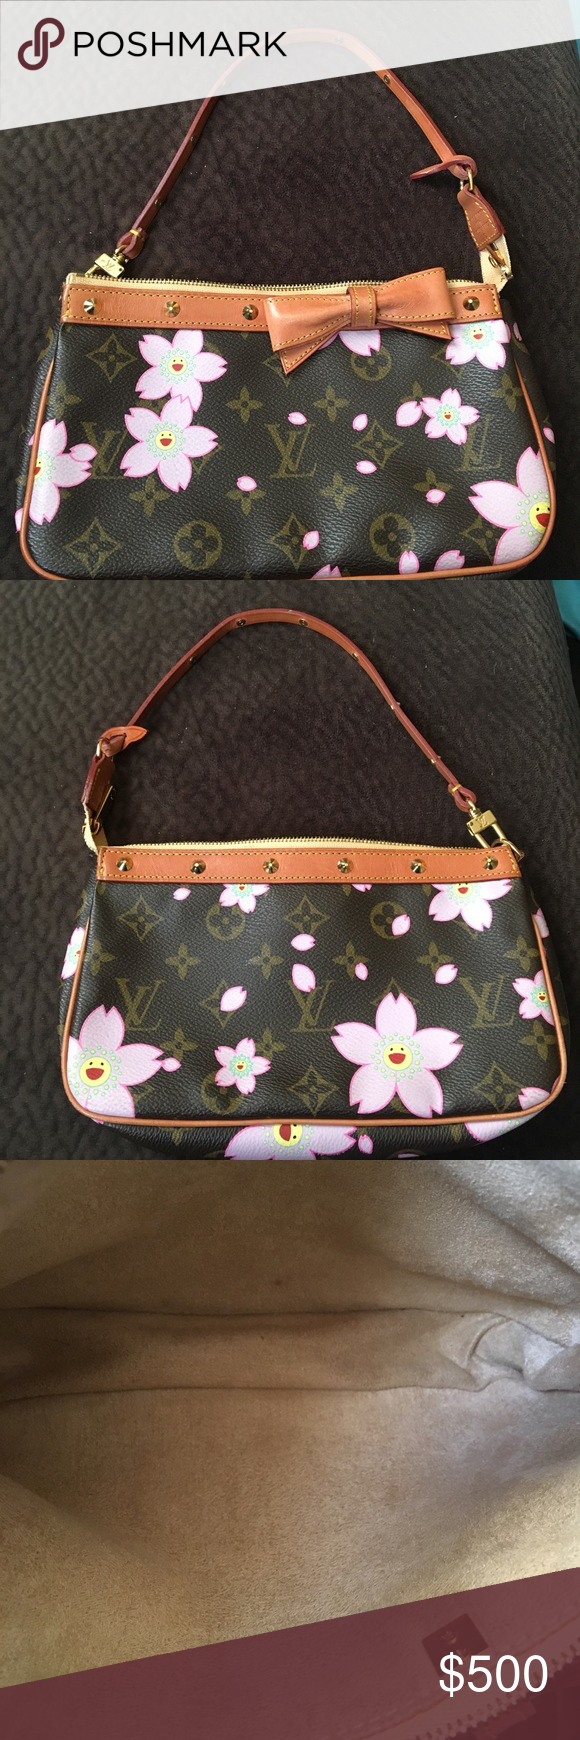 Authentic Louis Vuitton Cherry Blossom Pochette Authentic Louis